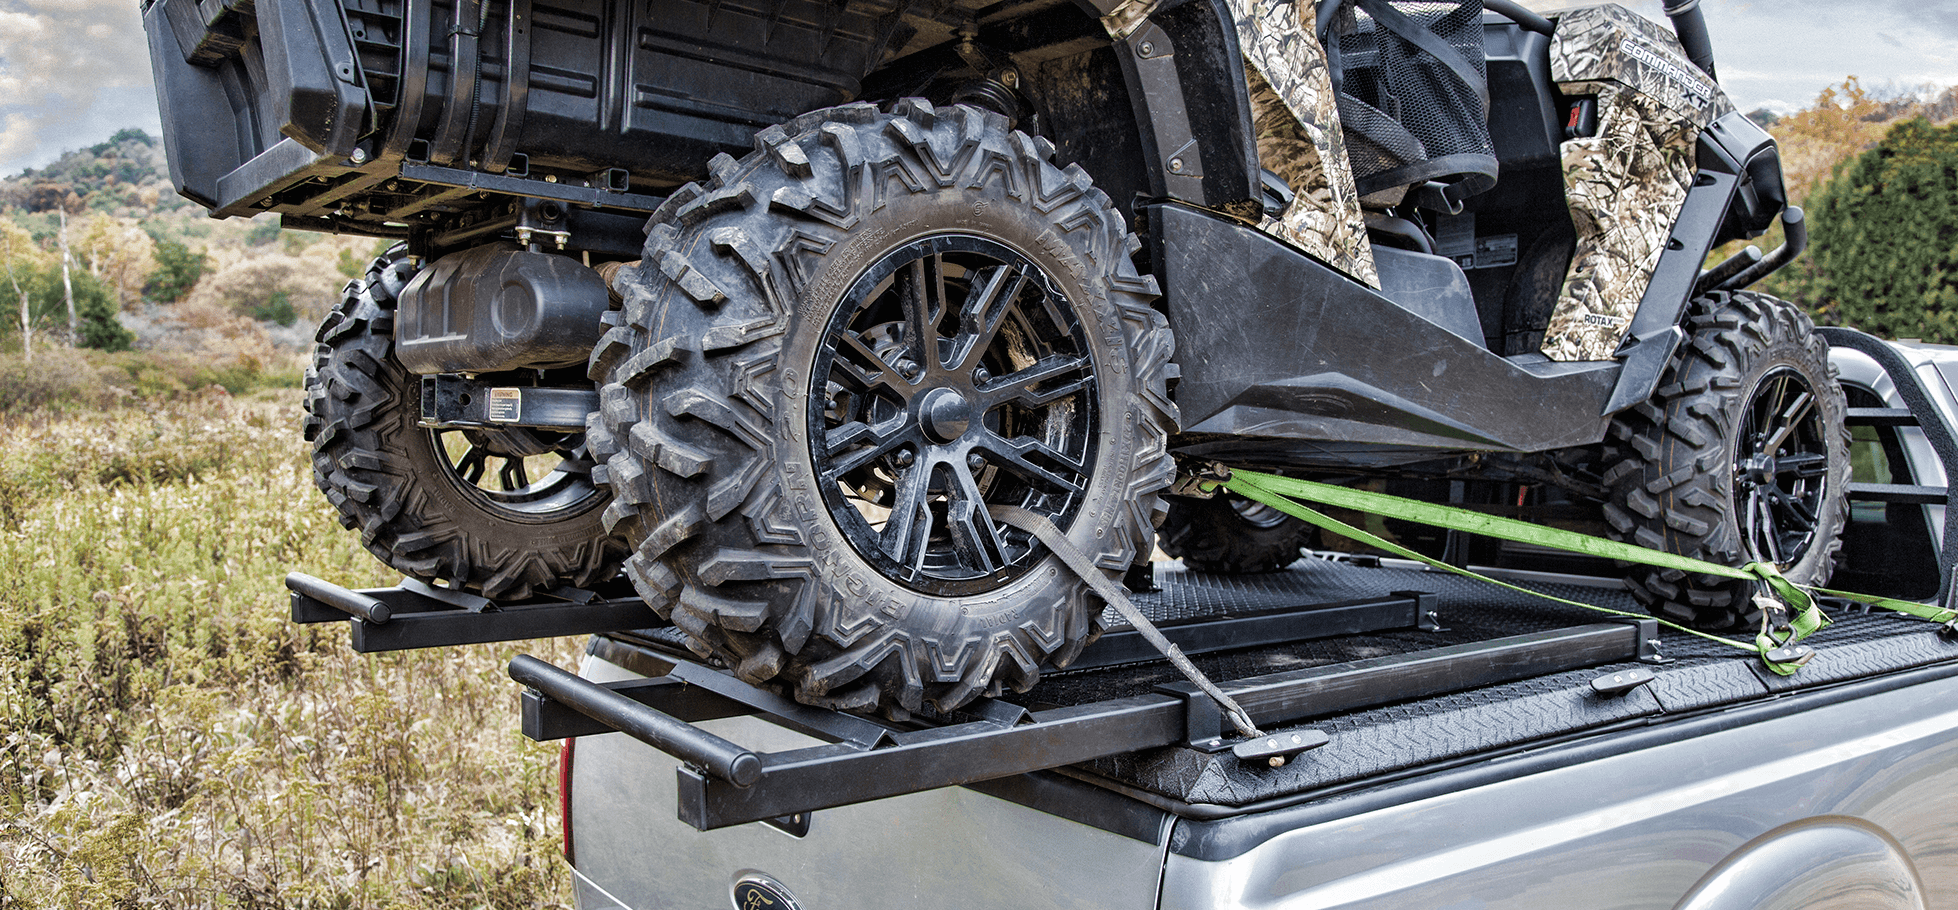 Sxs Utv Carrier Diamondback Truck Covers Chevy Headache Rack Close Up Of On Ford Super Duty With One